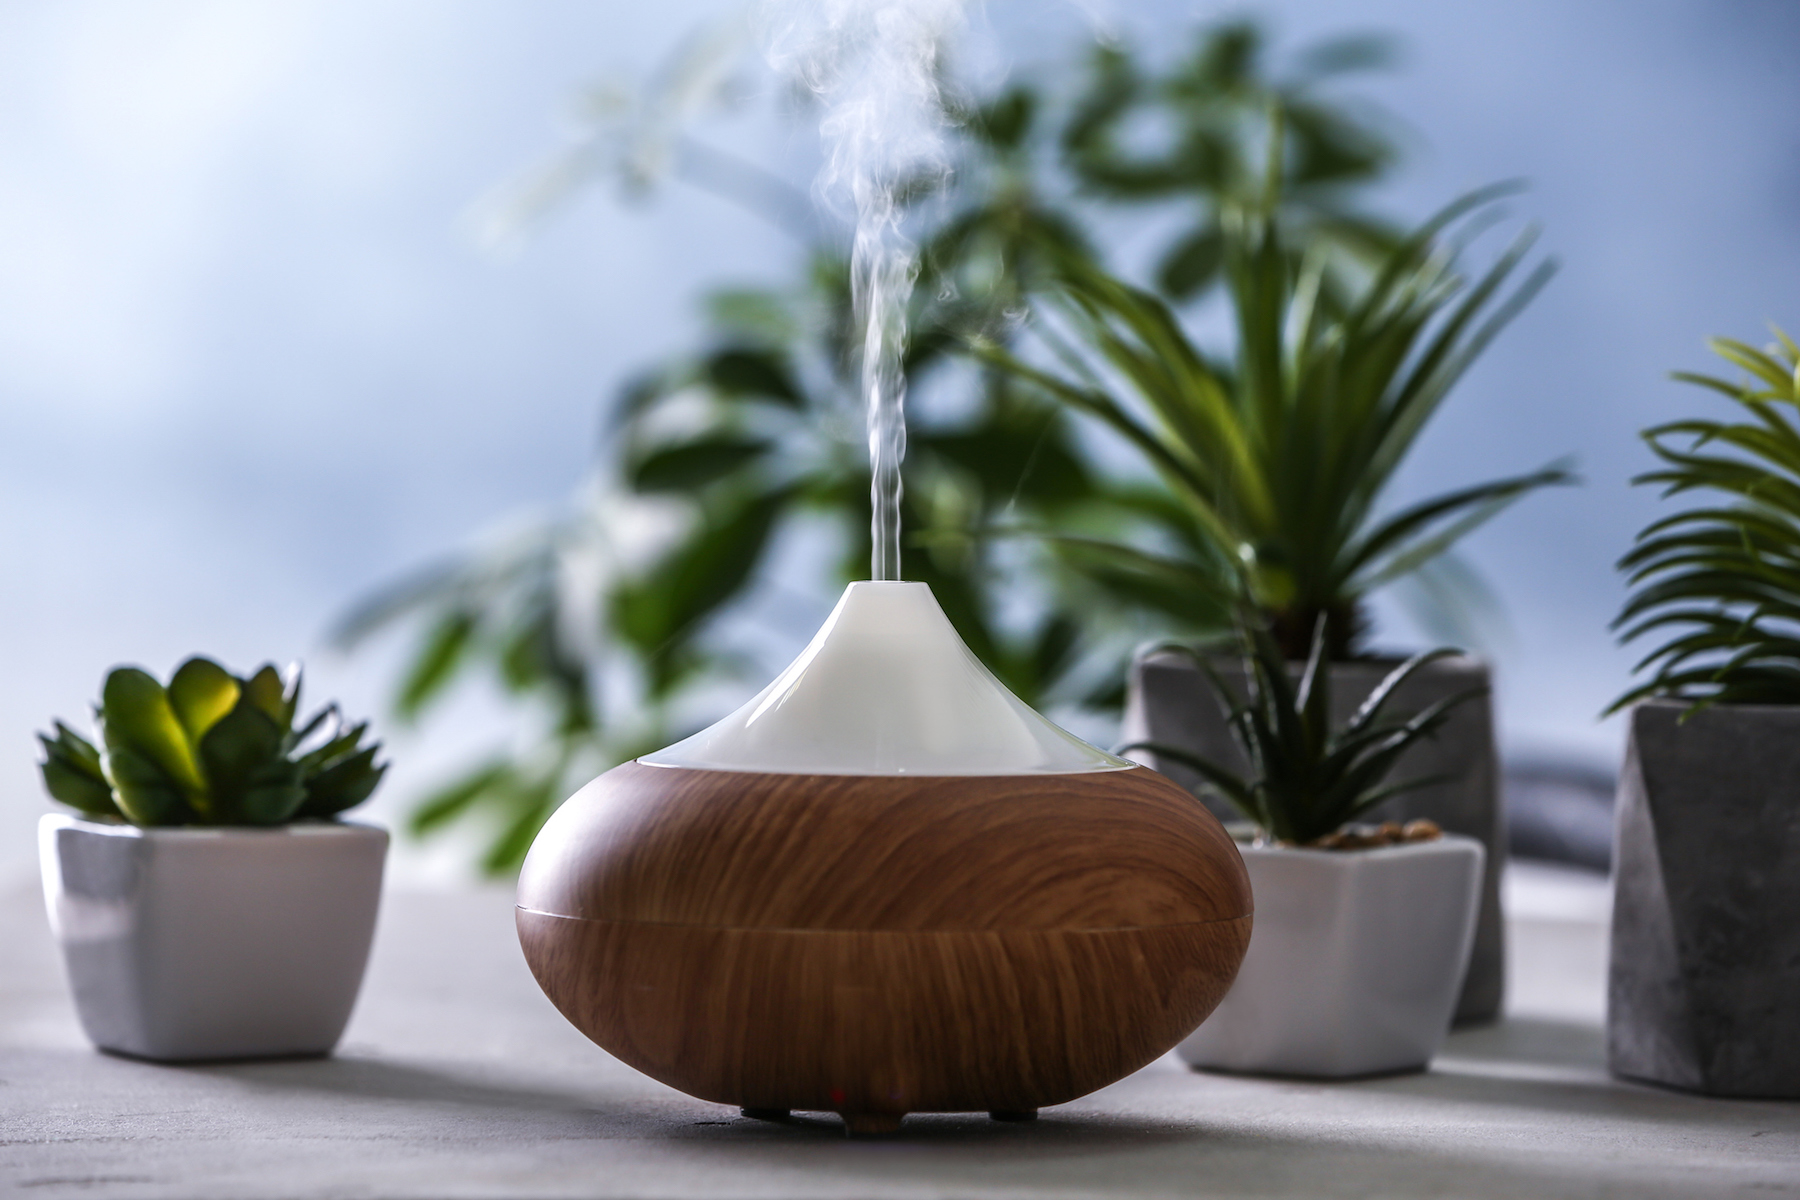 wooden humidifier and plants